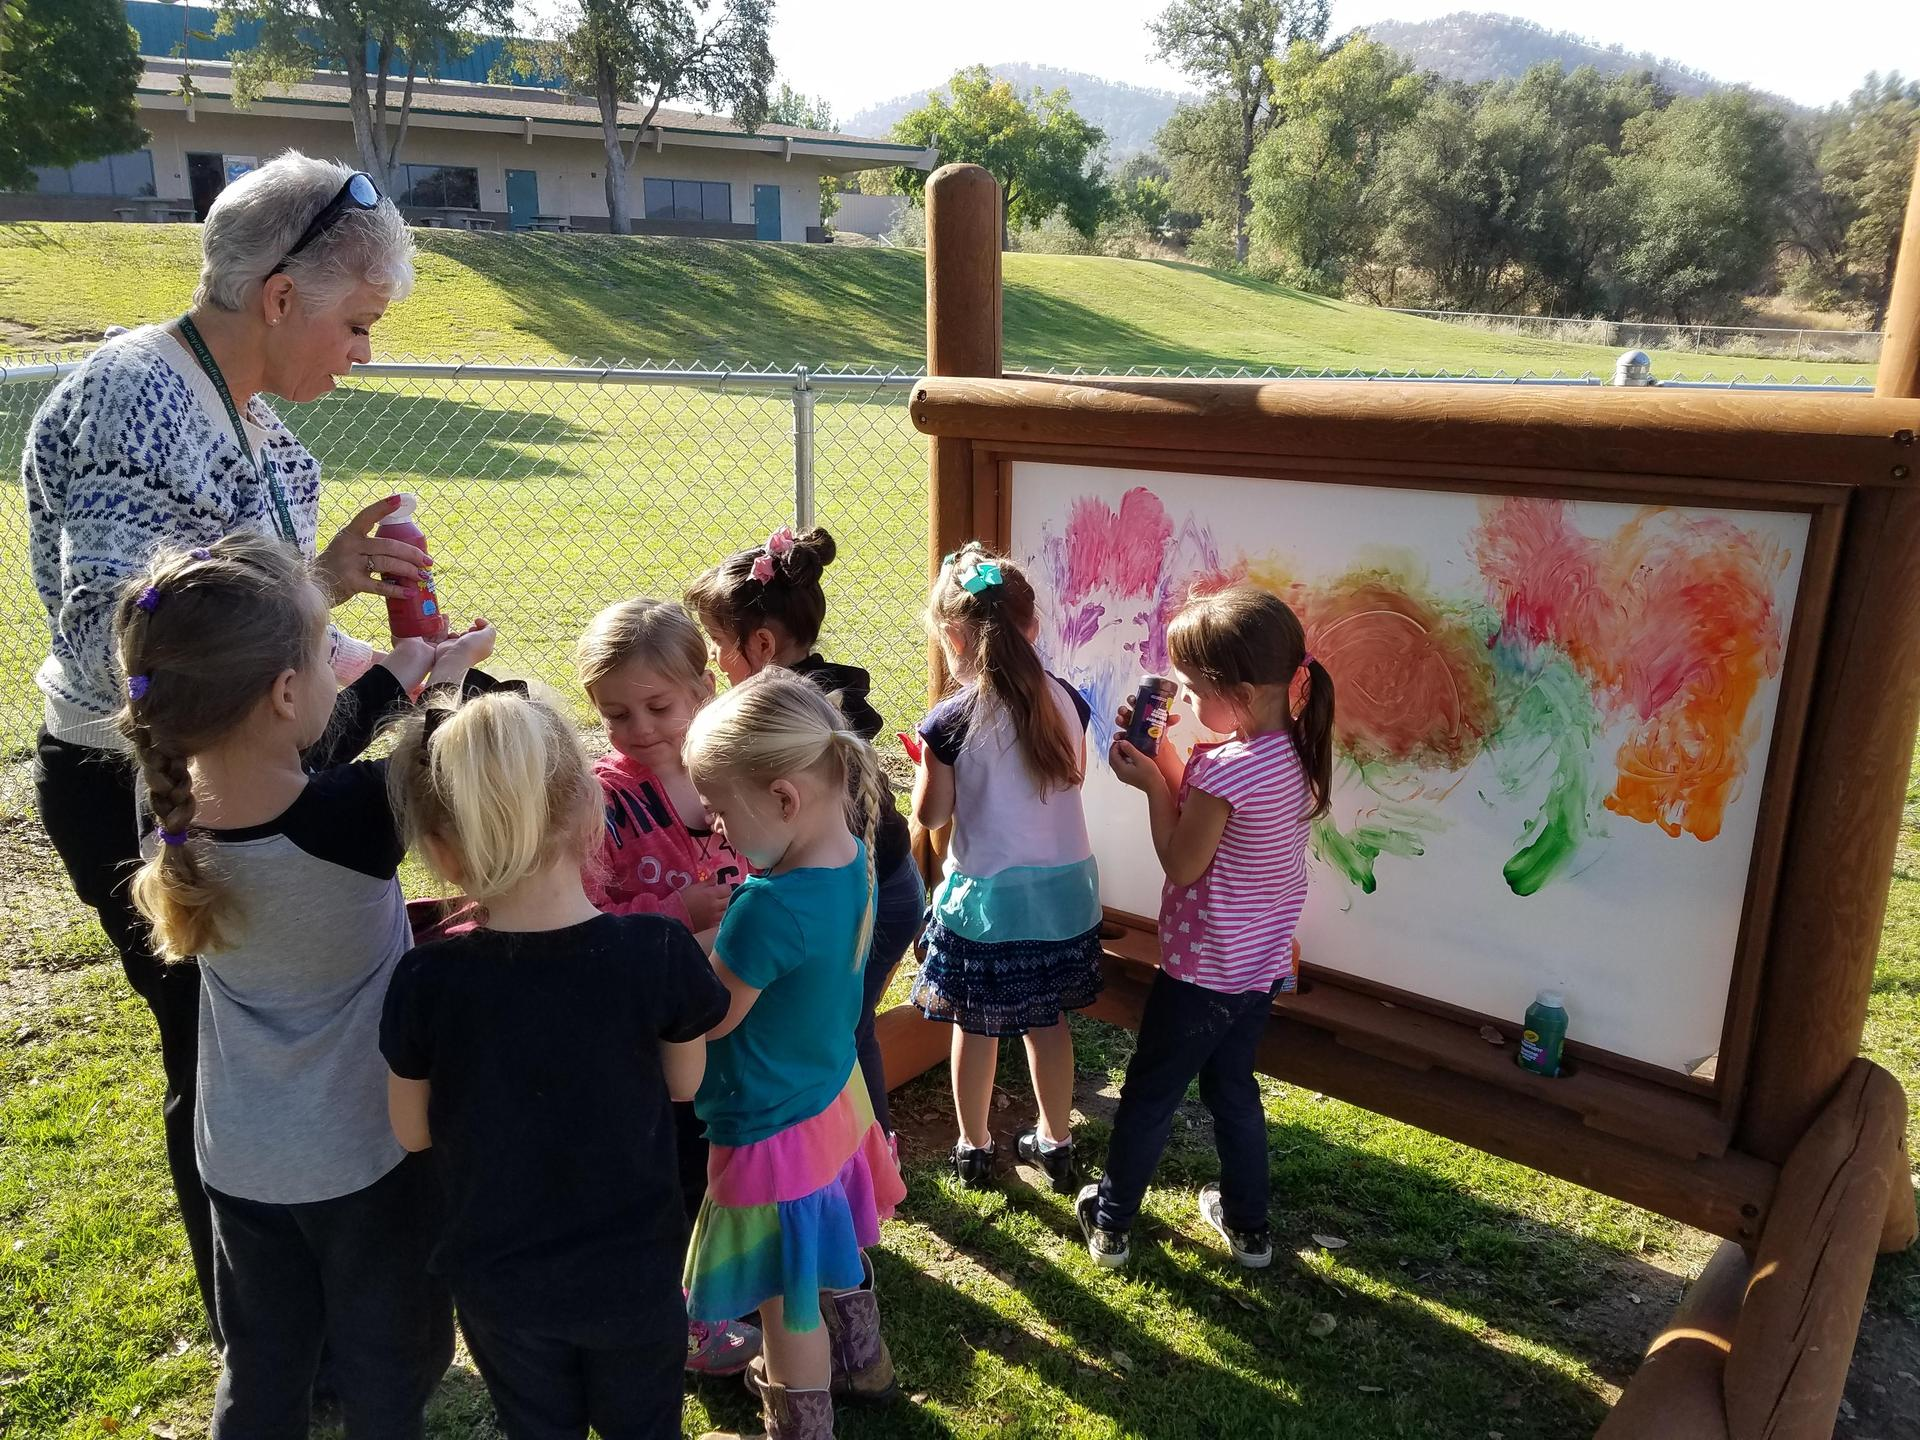 Students painting on outdoor art board